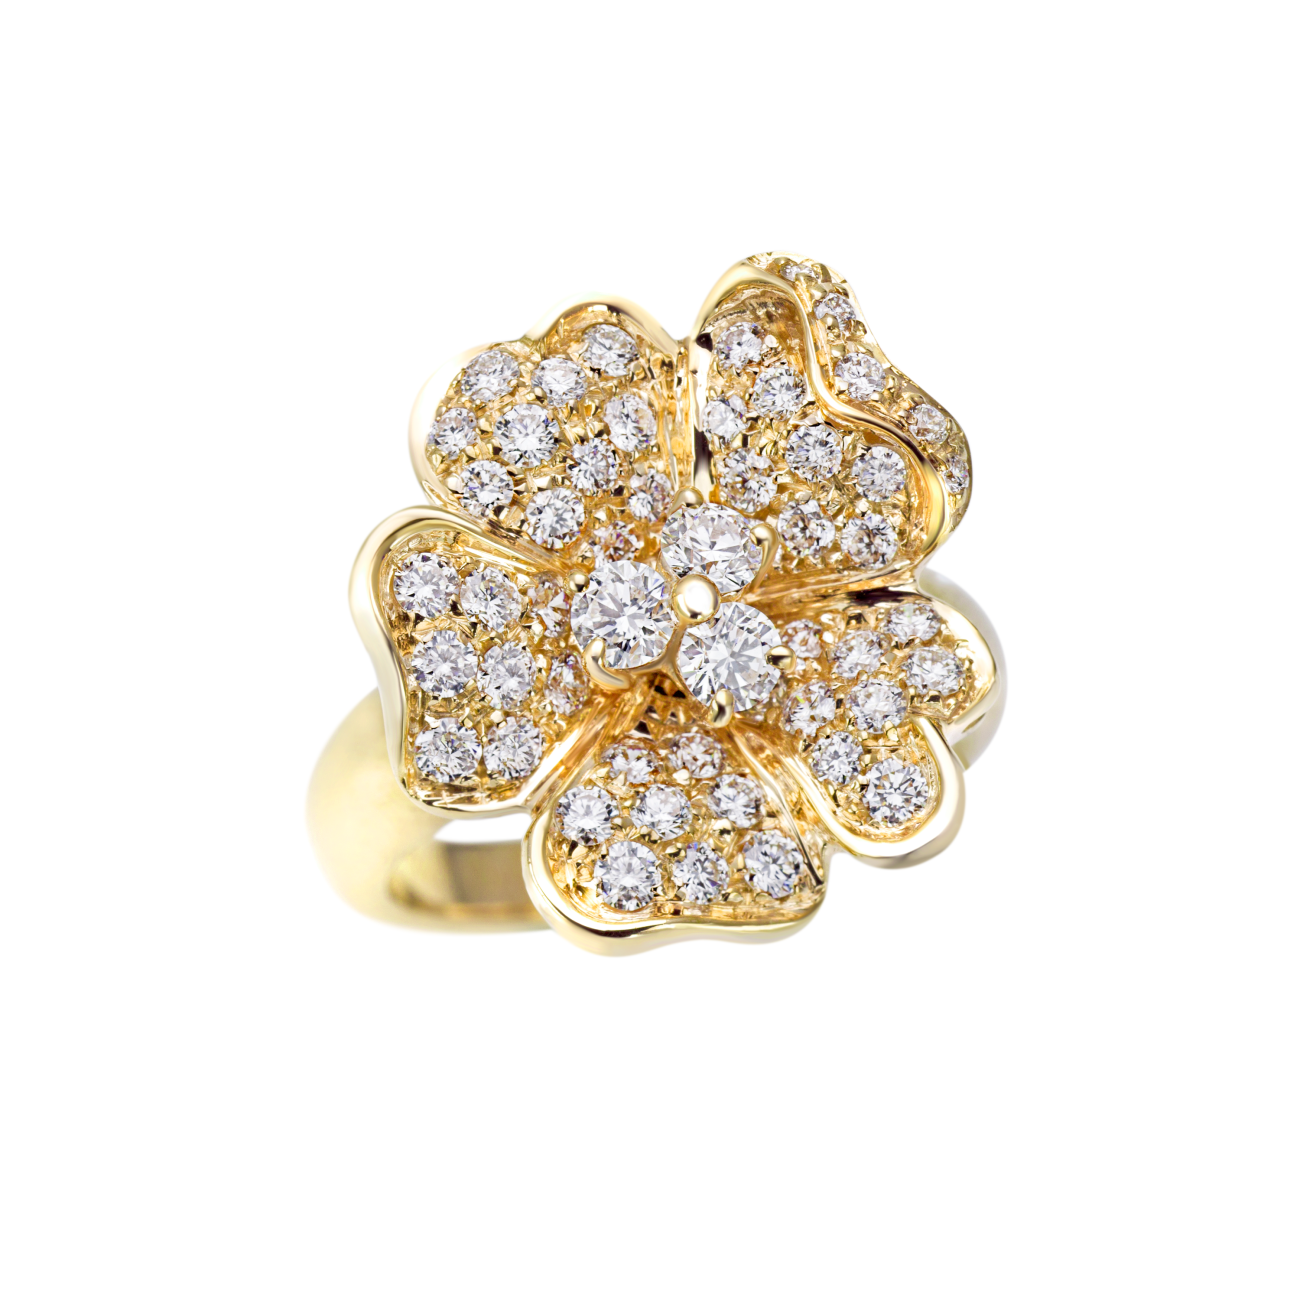 Leo Pizzo Jewelry - Leo Pizzo Flower Ring | Manfredi Jewels